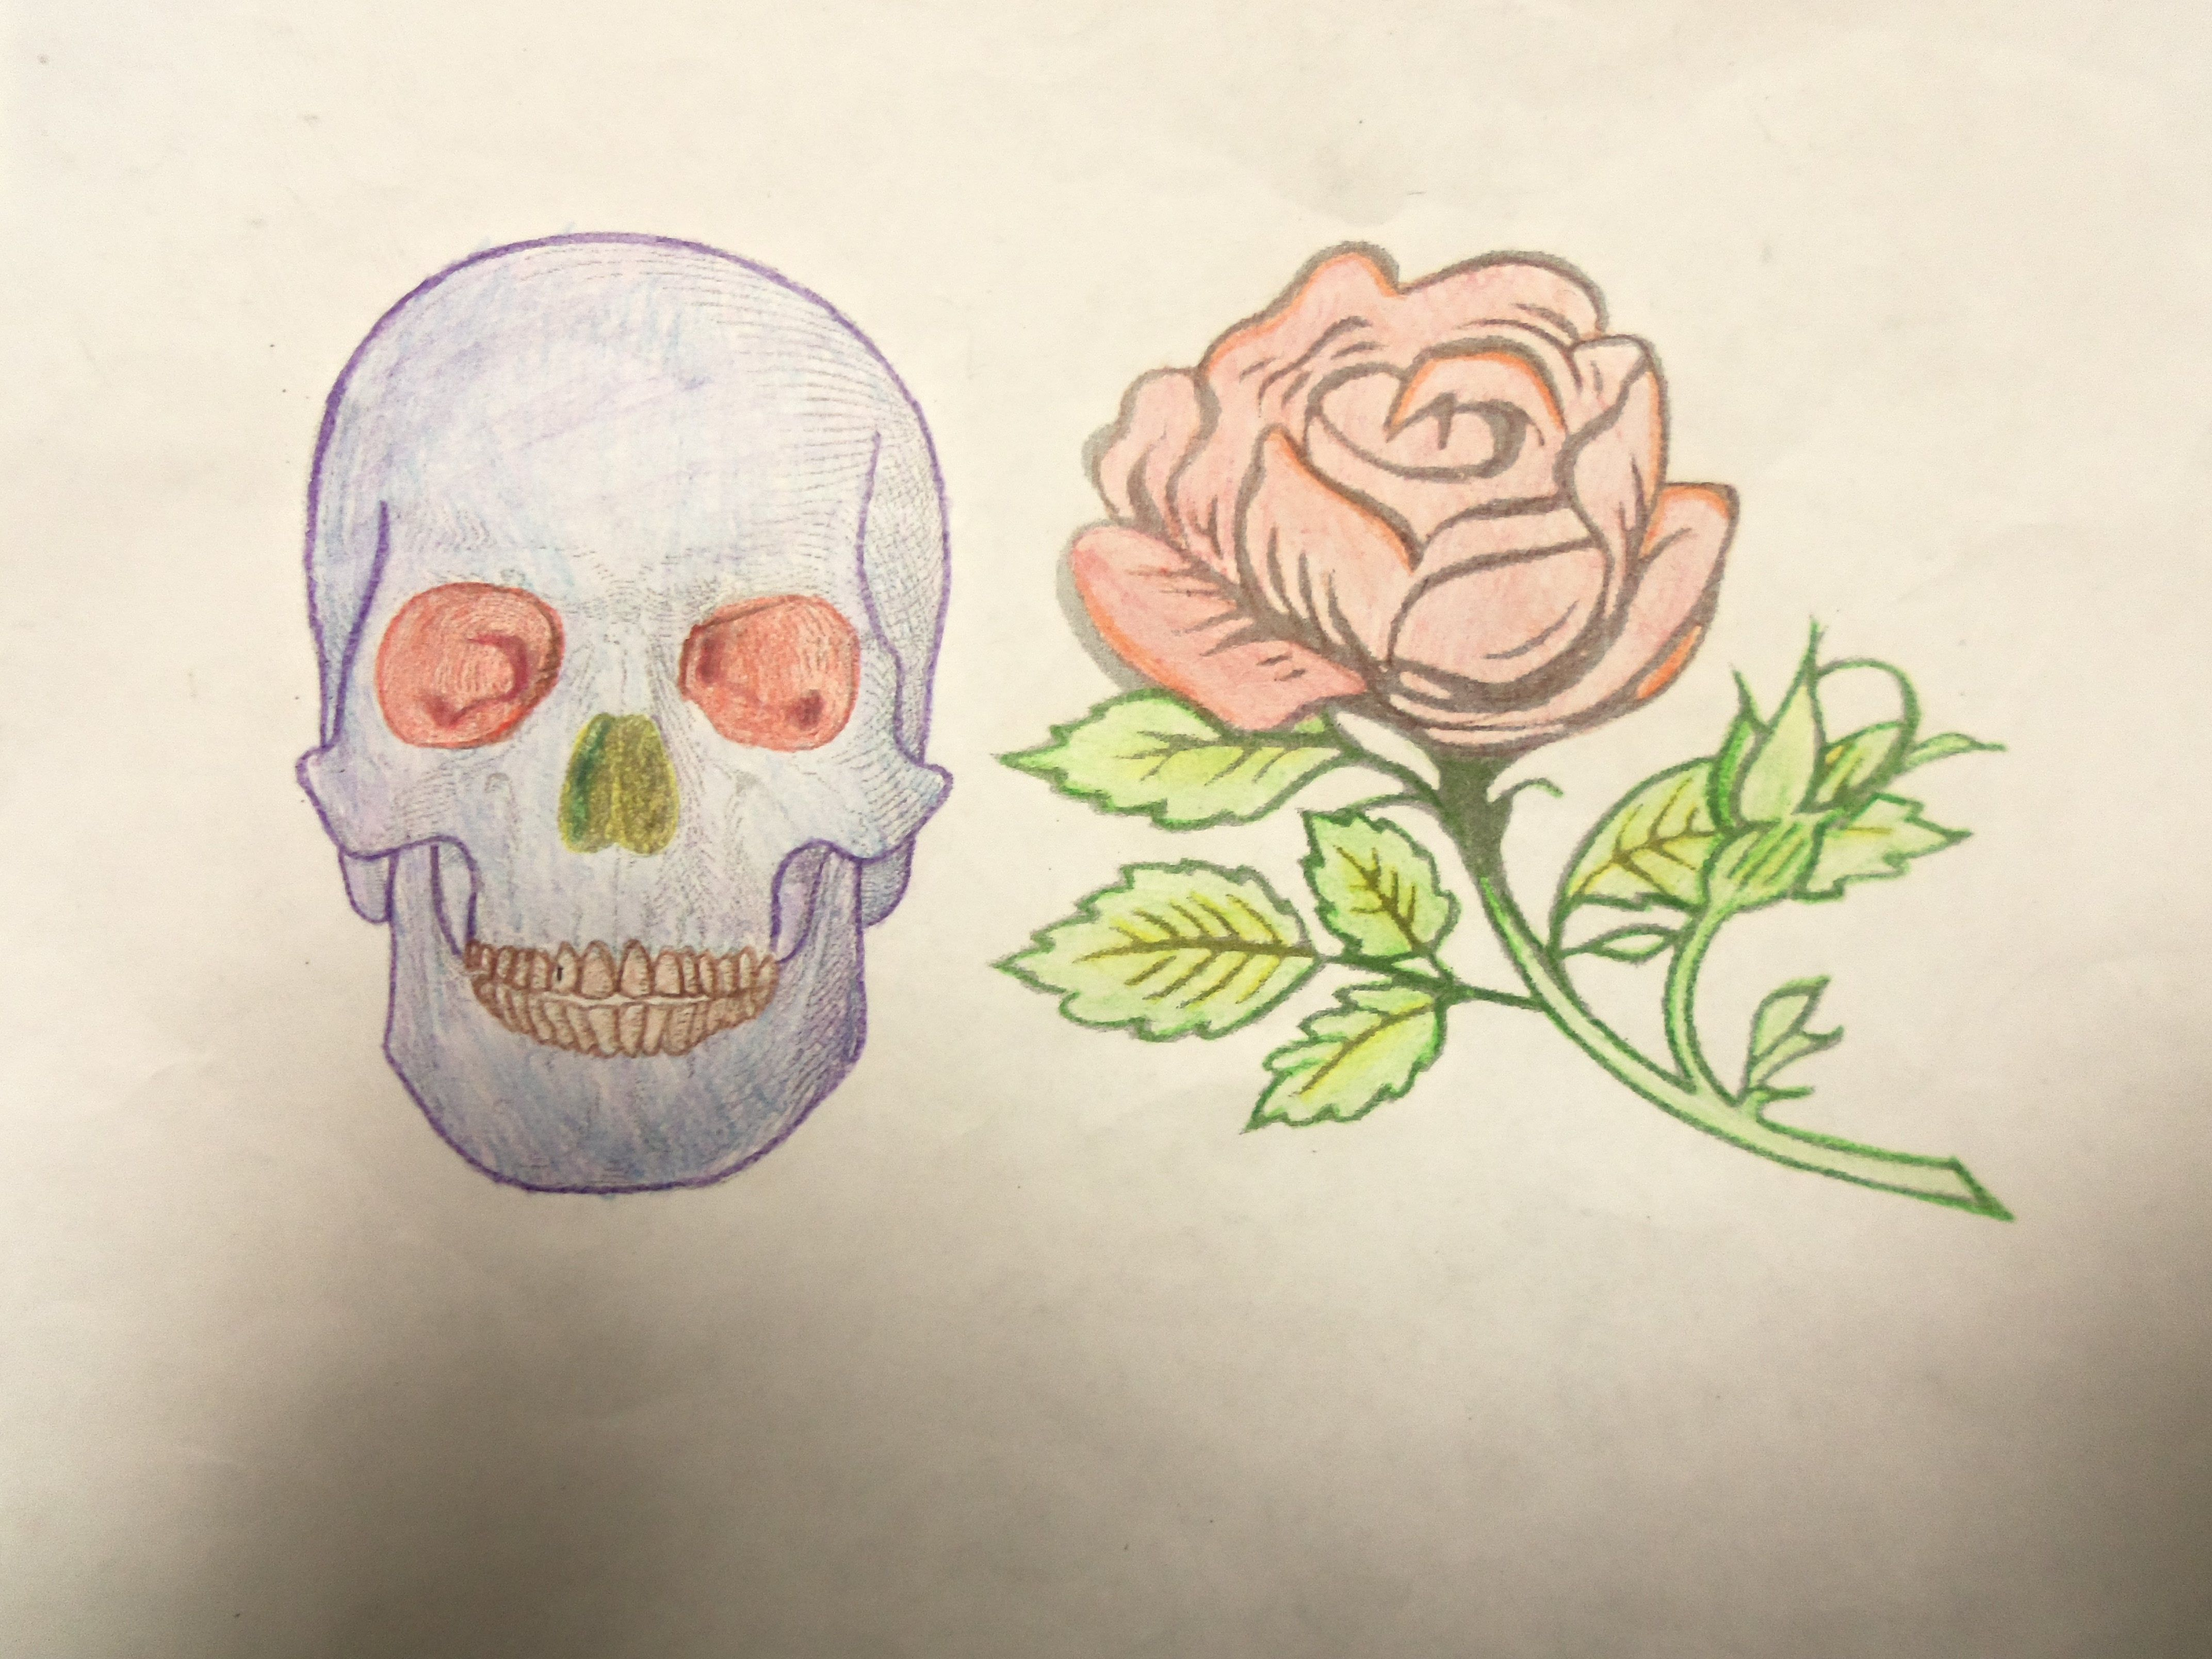 This Is An Image Of A Skull And Rose That I Colored Using The Technique